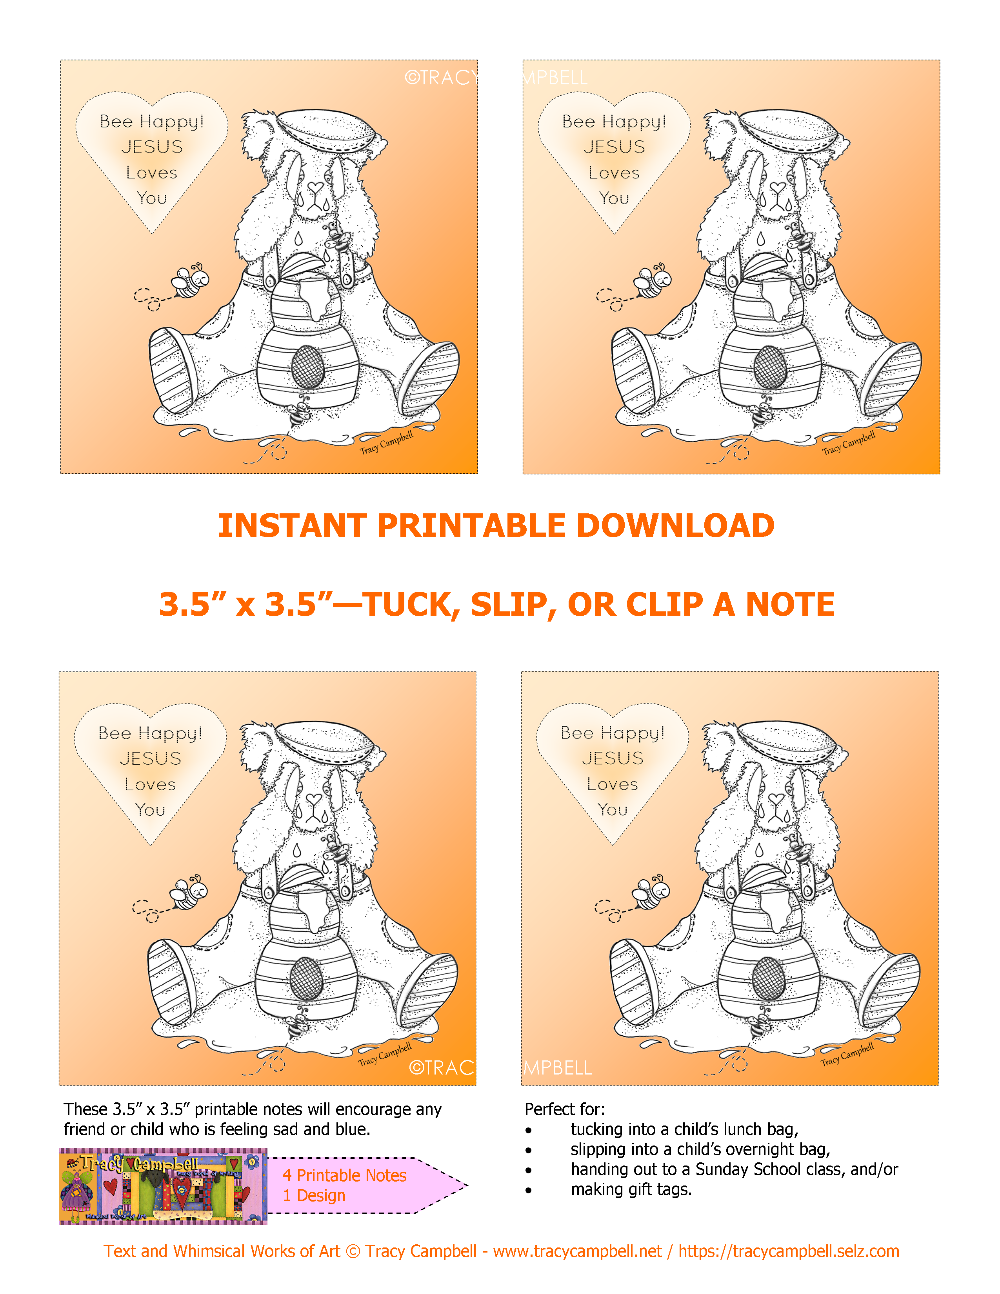 PRINTABLE NOTES - BEE HAPPY! JESUS LOVES YOU